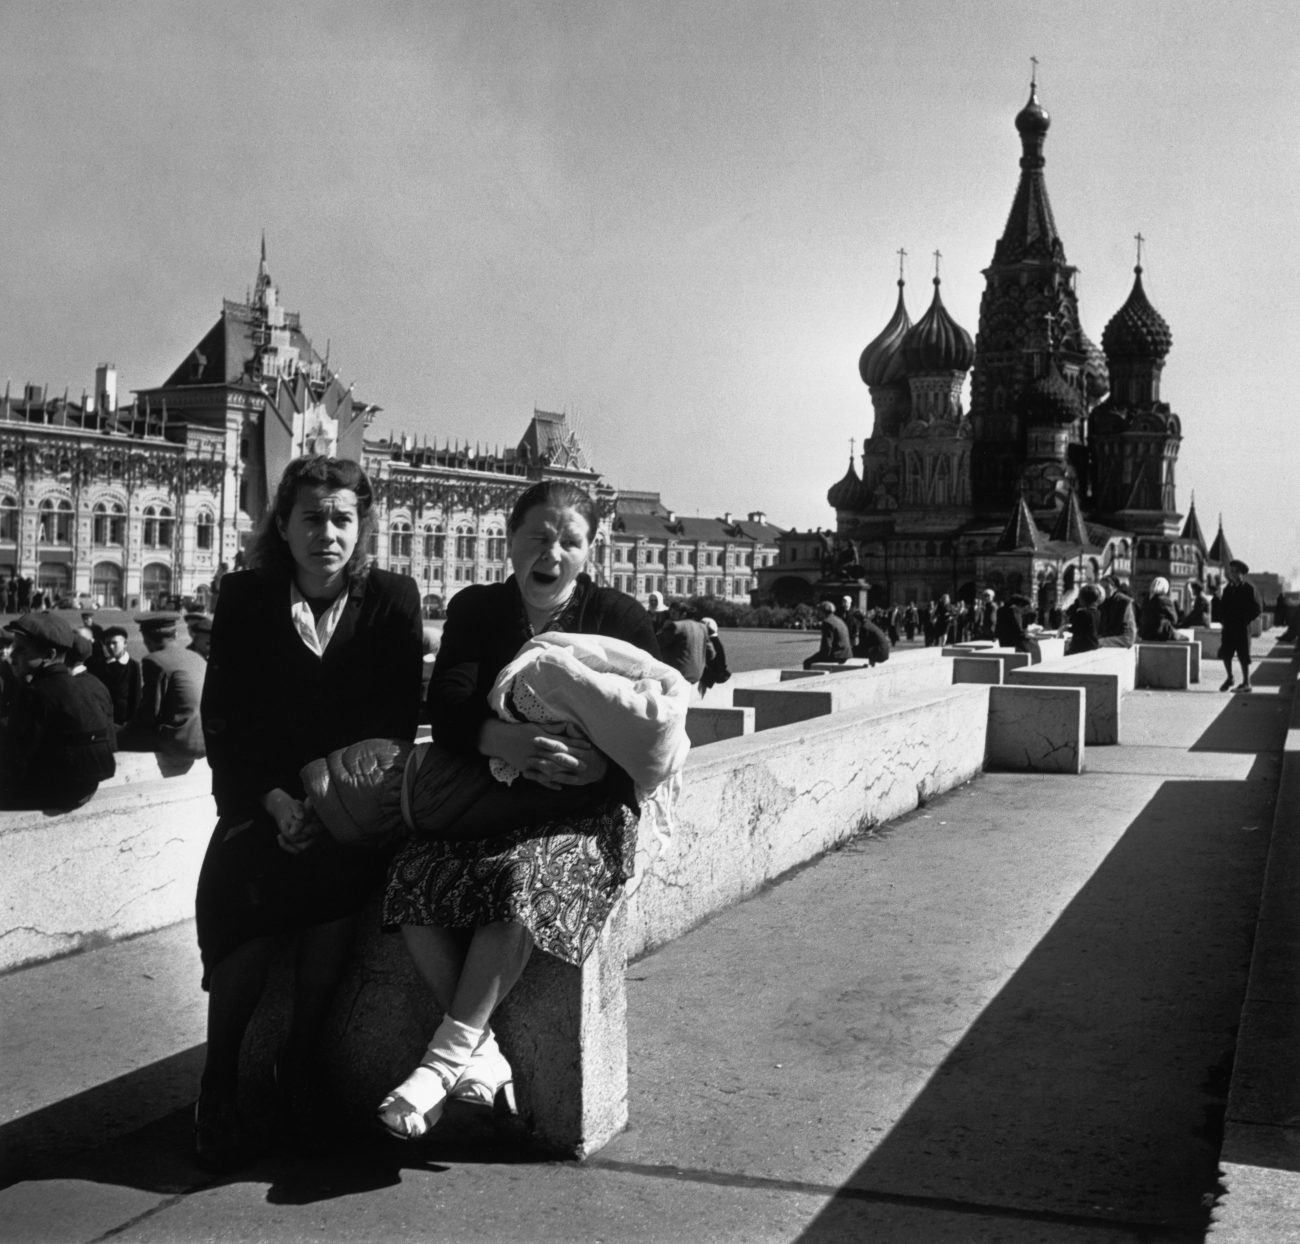 Place Rouge, Moscou, URSS, 1947.